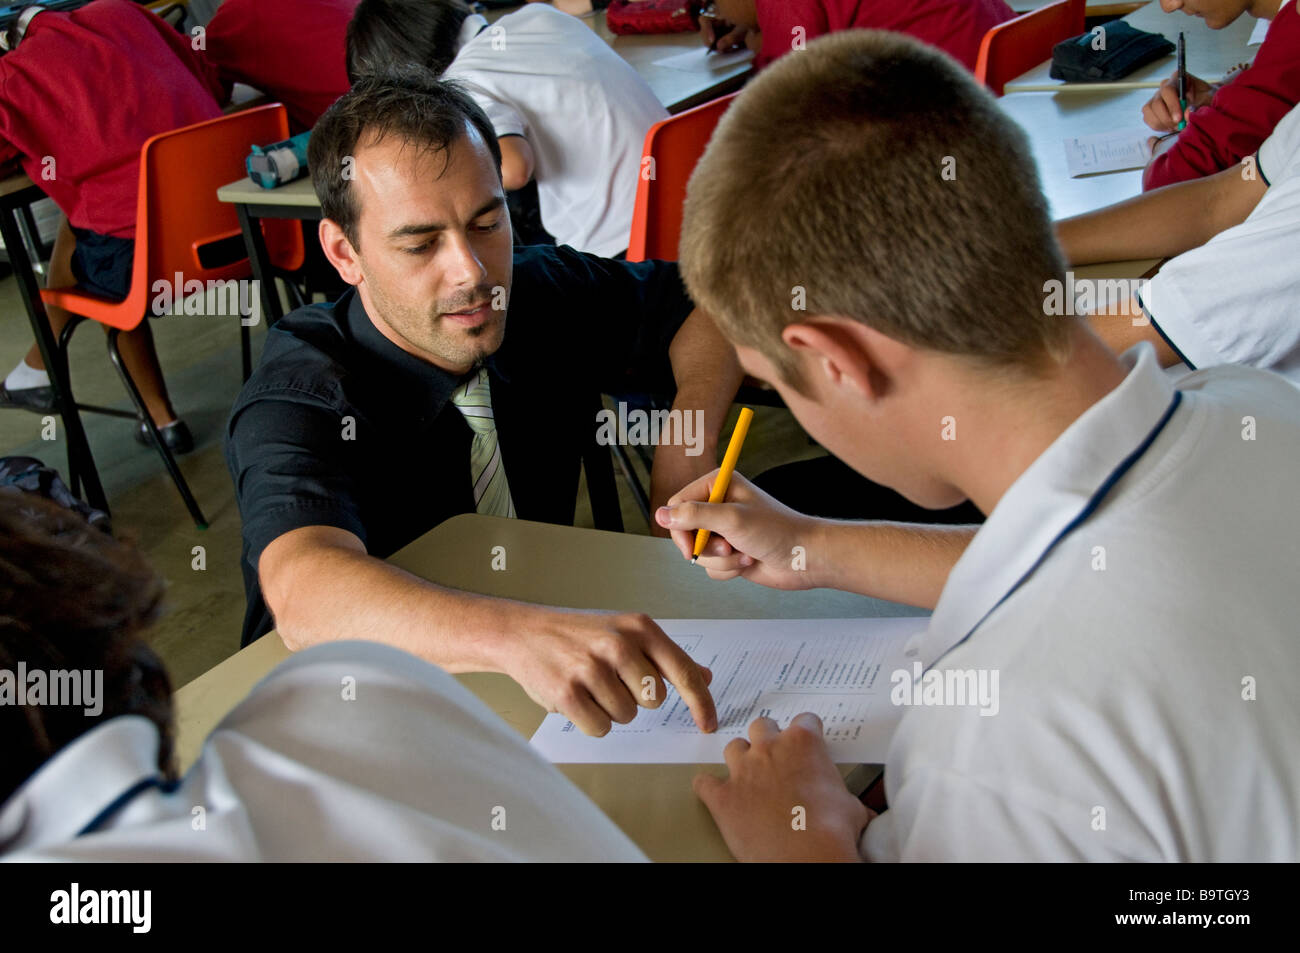 Male teacher coaching teenage boy student with his study work in secondary high school classroom - Stock Image